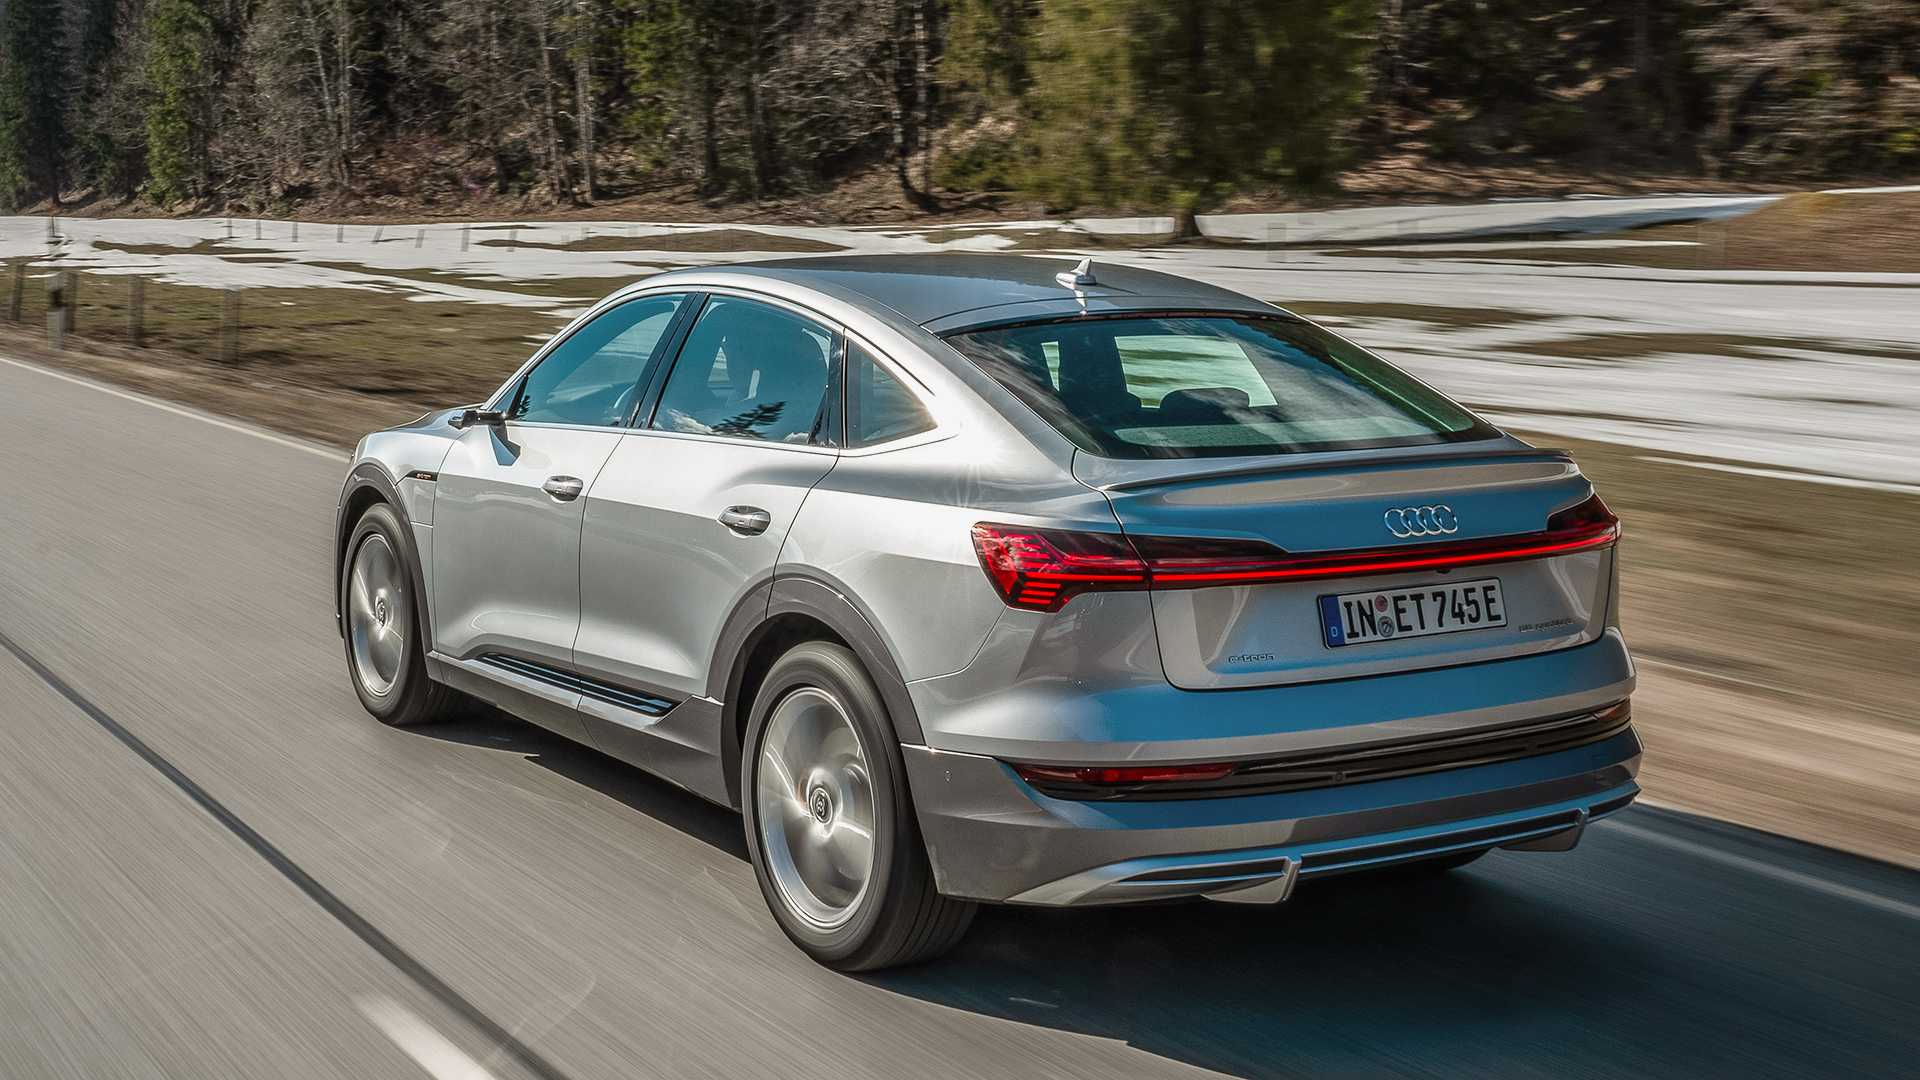 2020 audi e-tron sportback first drive review: slimmer